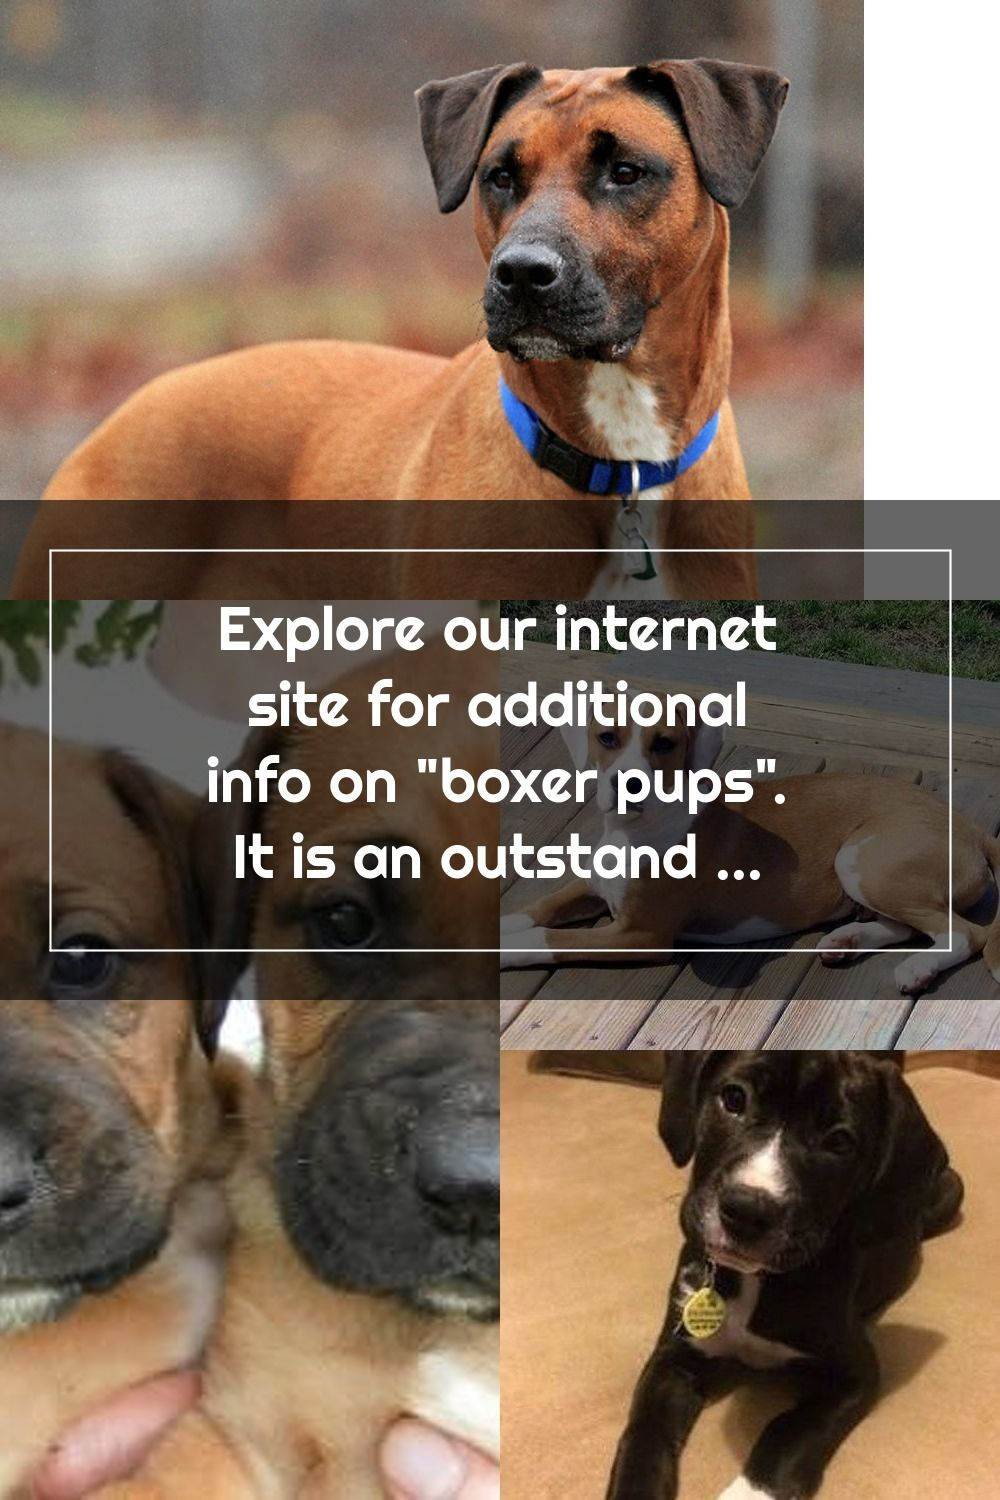 Explore Our Internet Site For Additional Info On Boxer Pups It Is An Outstanding Spot To Find Out More In 2020 Boxer Puppies Pugs Funny Dog Training Obedience